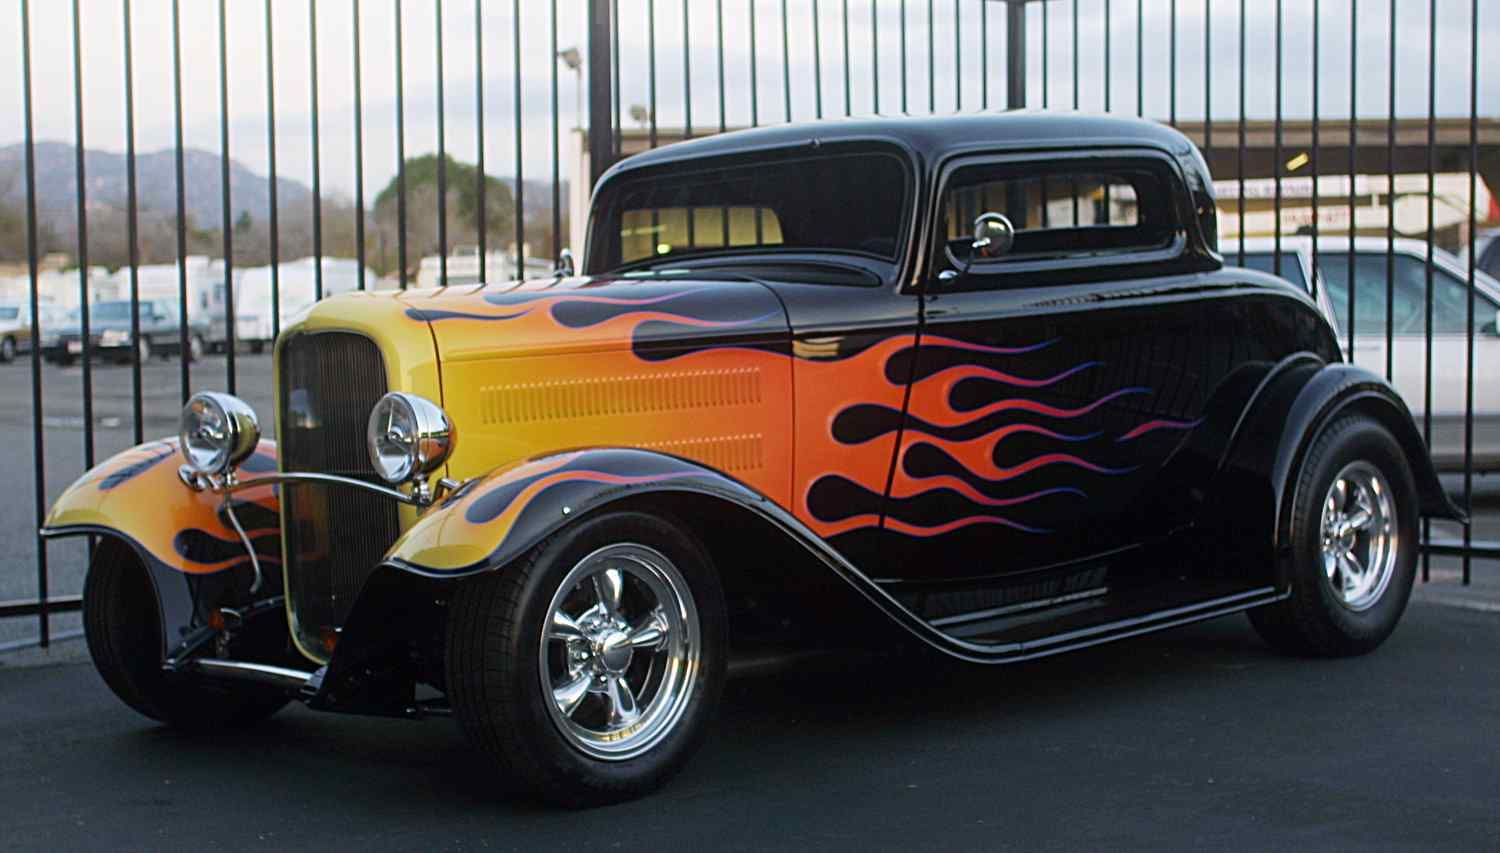 Hot Rod Cars | Car pictures, Cars and 1932 ford